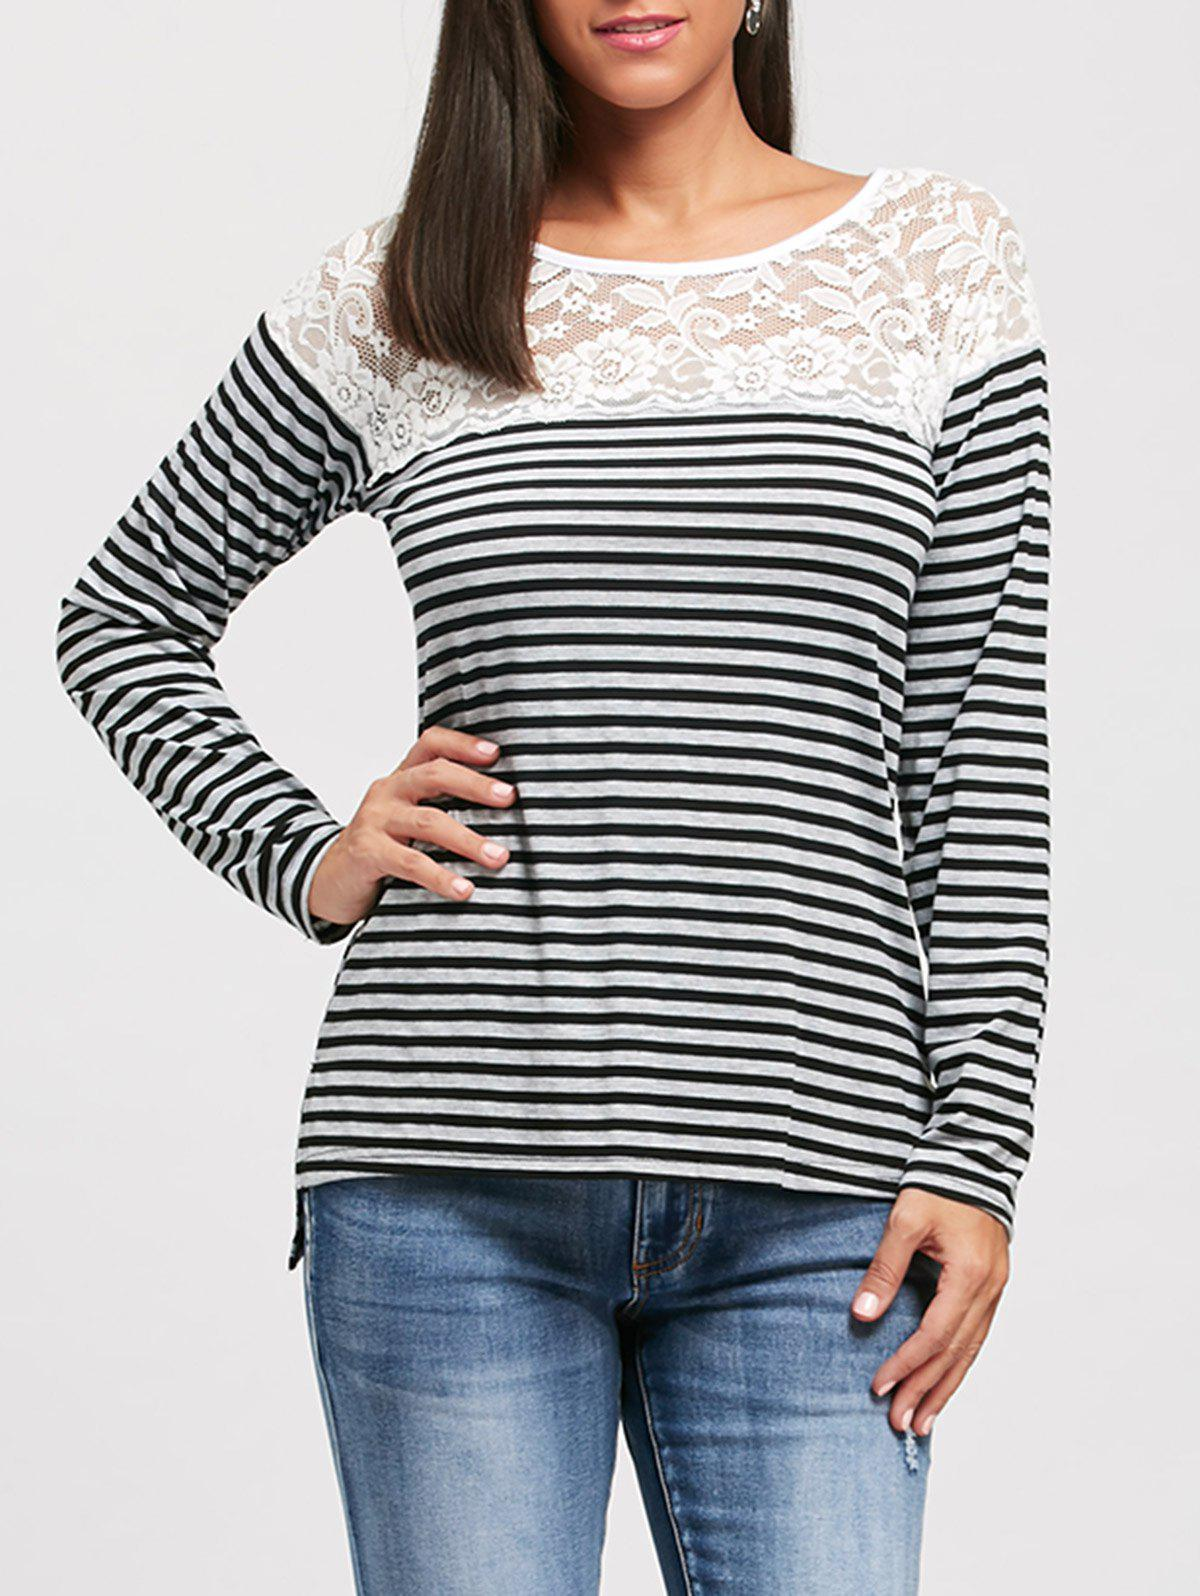 Lace Panel Long Raglan Sleeve Striped T-shirt stripe panel raglan sleeve t shirt